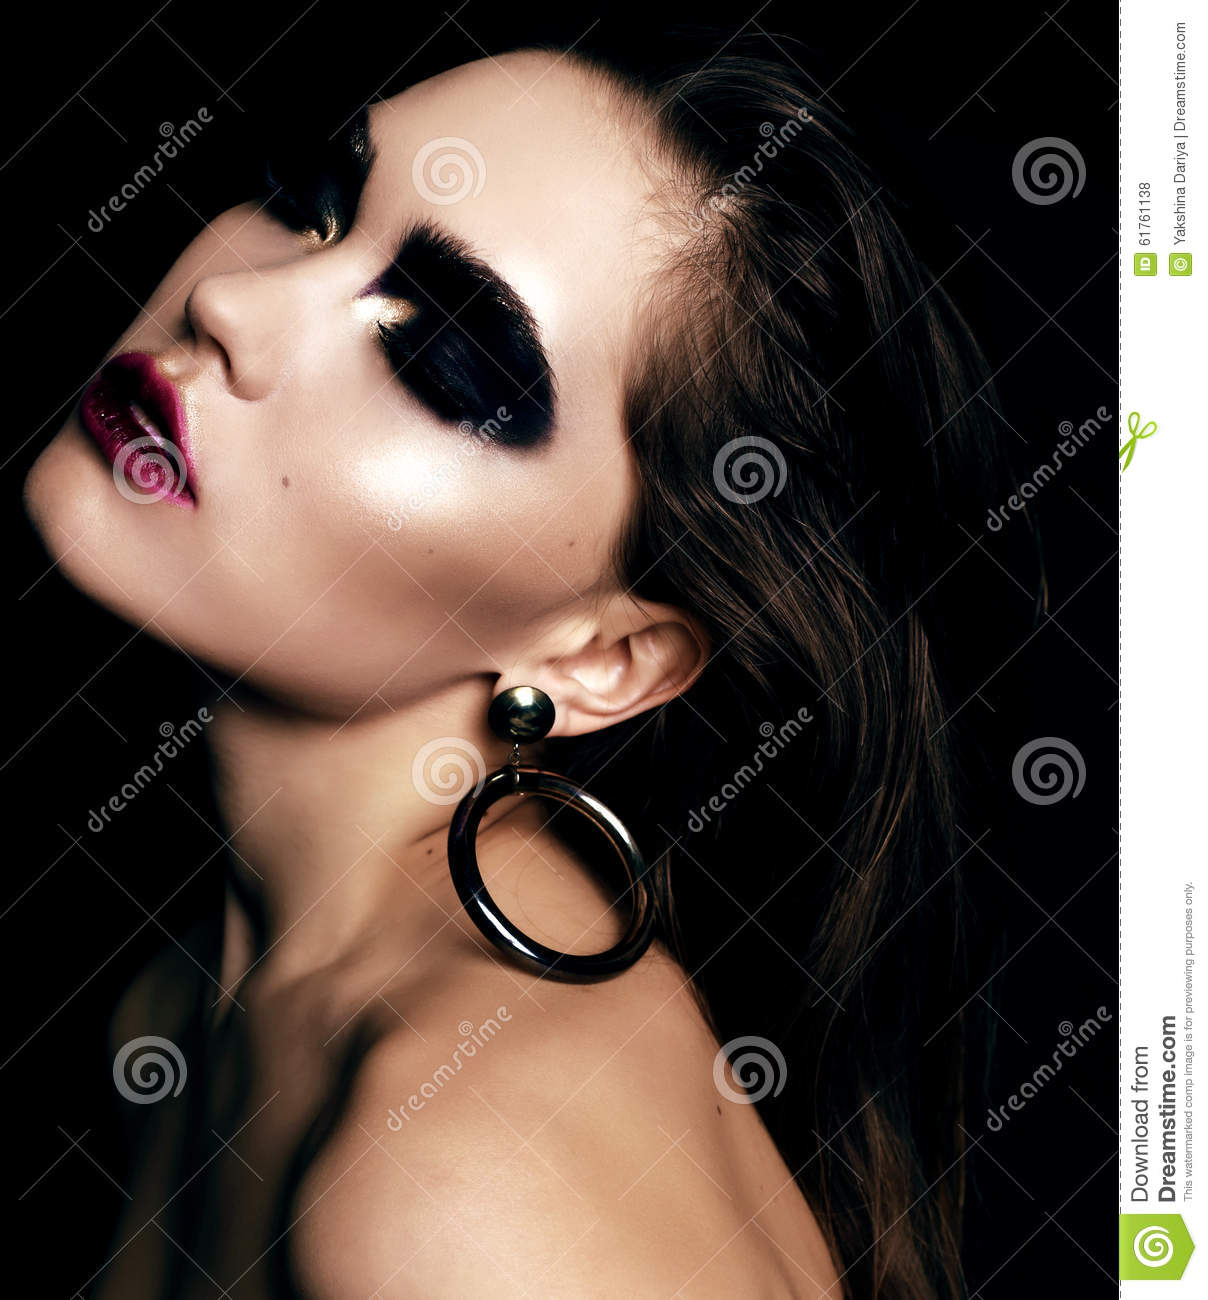 Beautiful Woman With Dark Hair And Extravagant Black Smokey Eyes